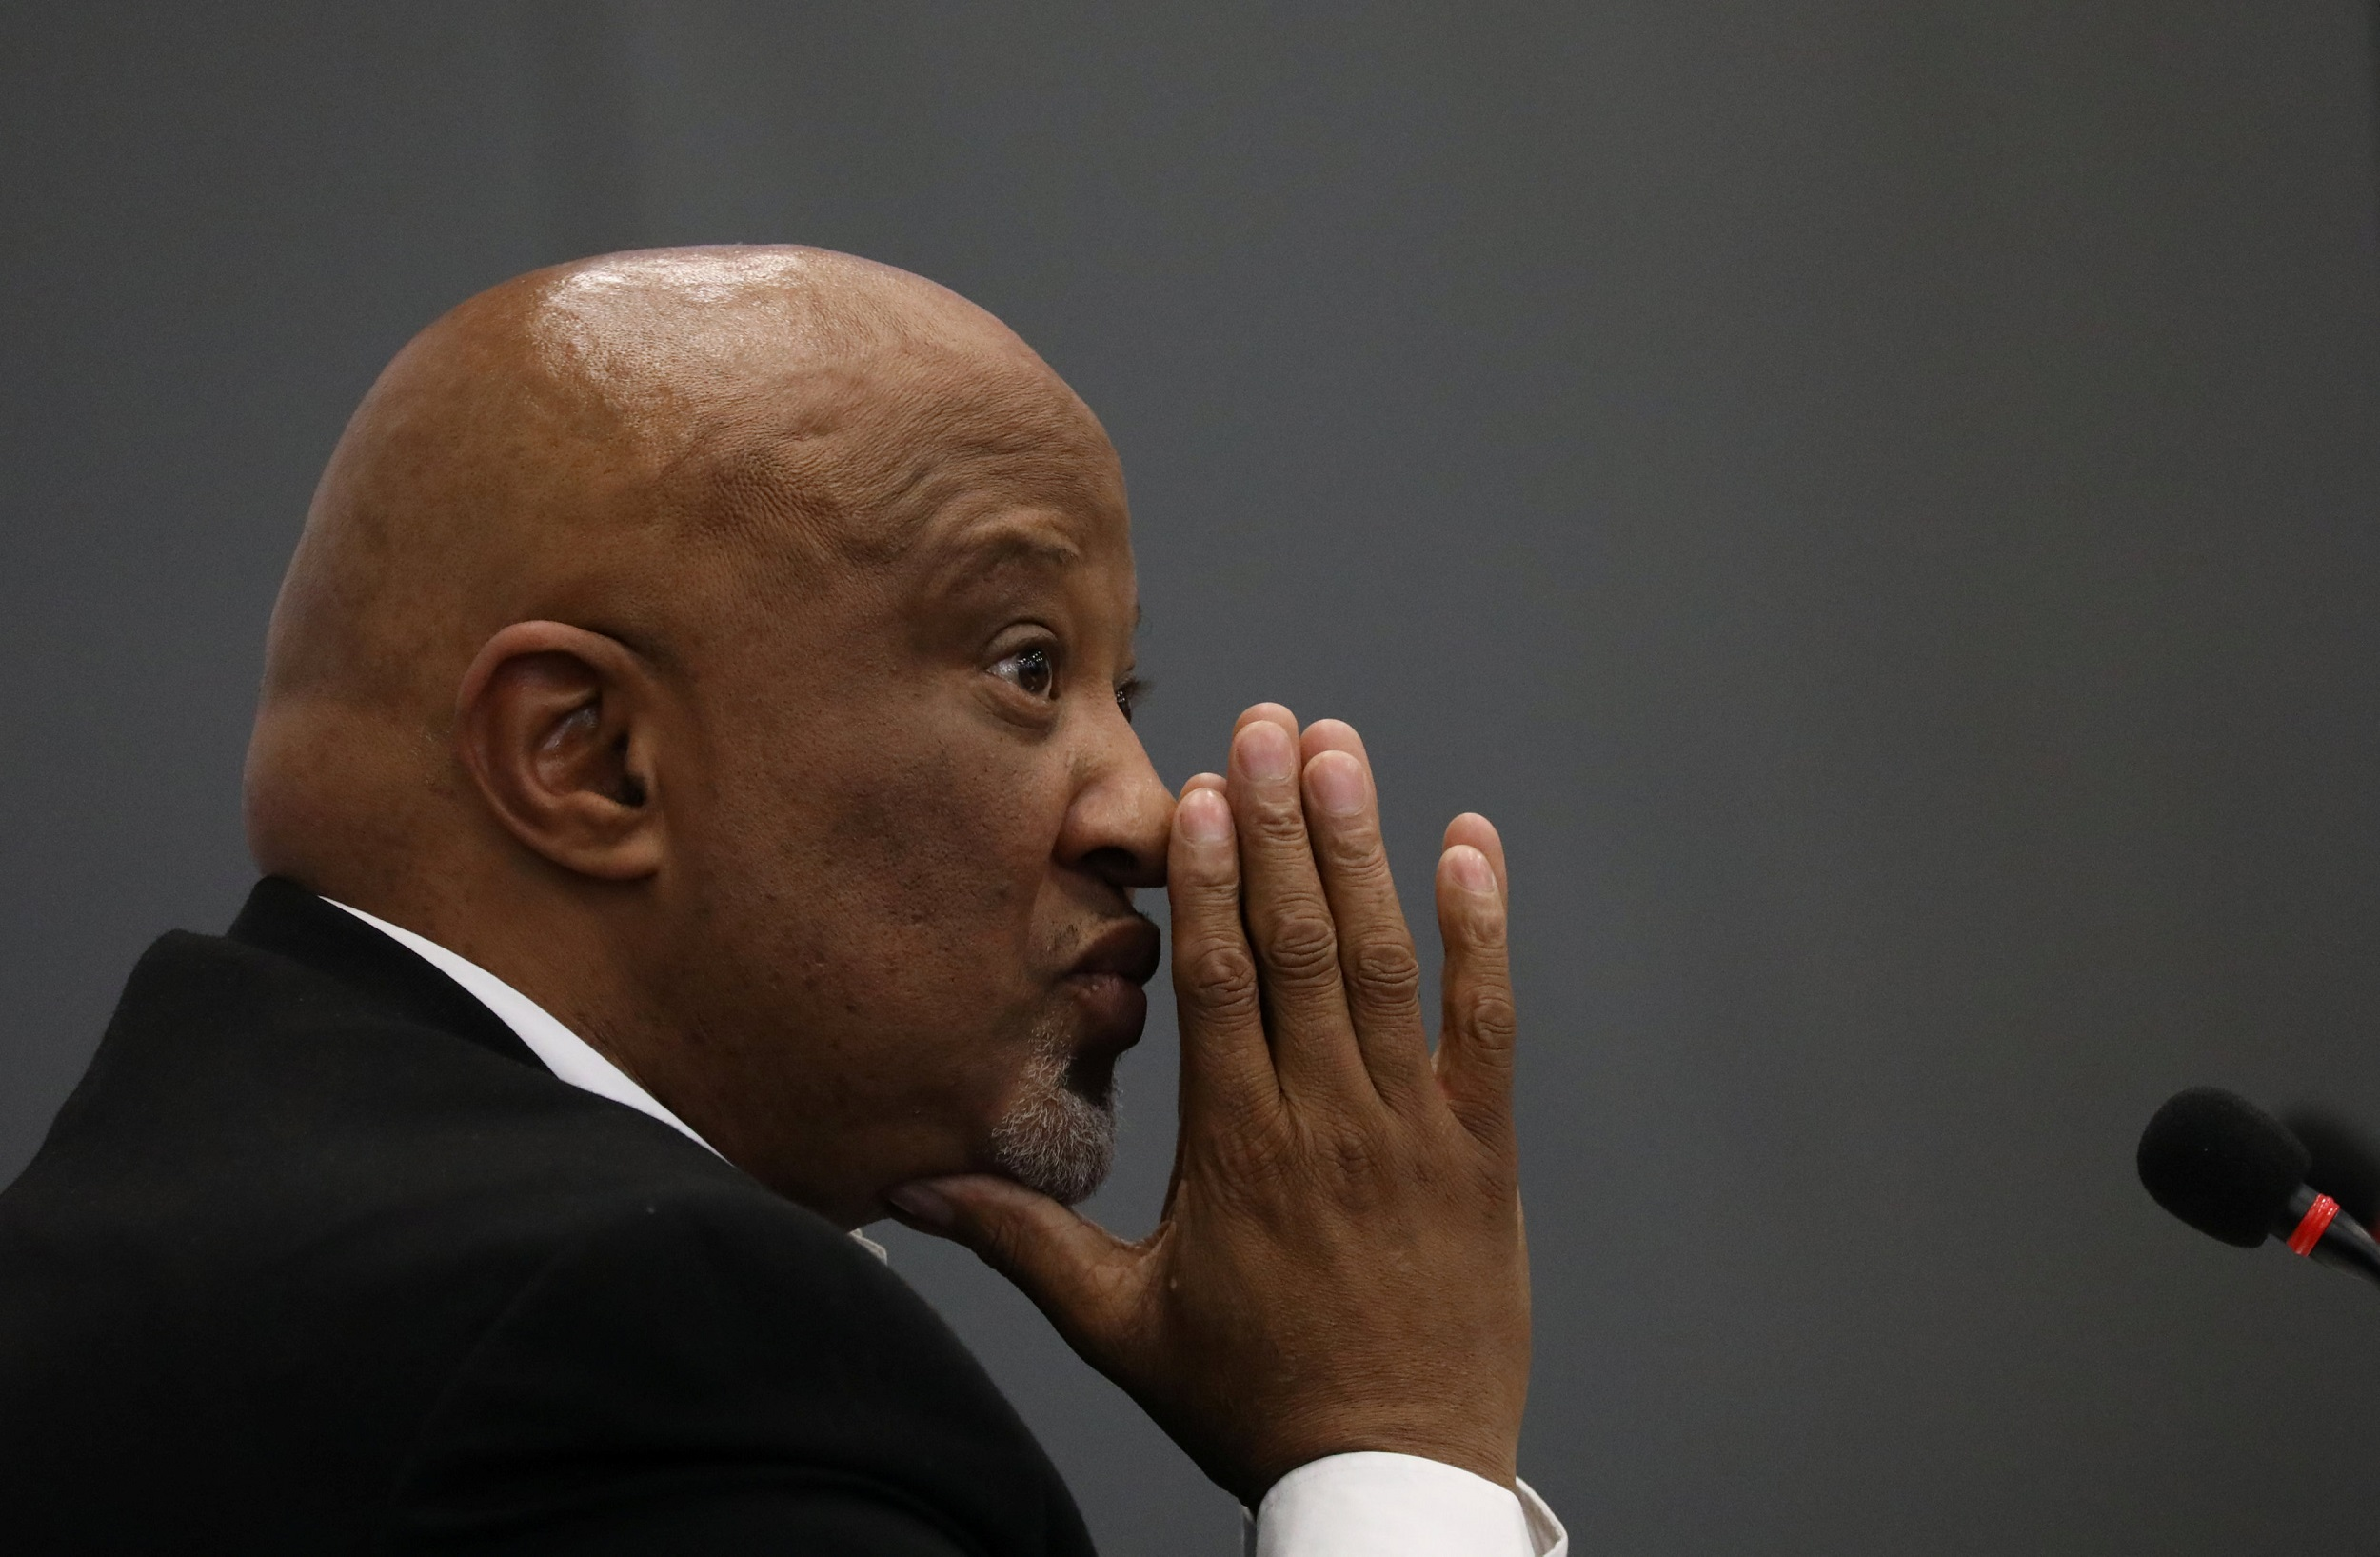 Former Deputy Finance Minister Mcebisi Jonas gestures ahead of the Judicial Commission of Inquiry probing state capture in Johannesburg.